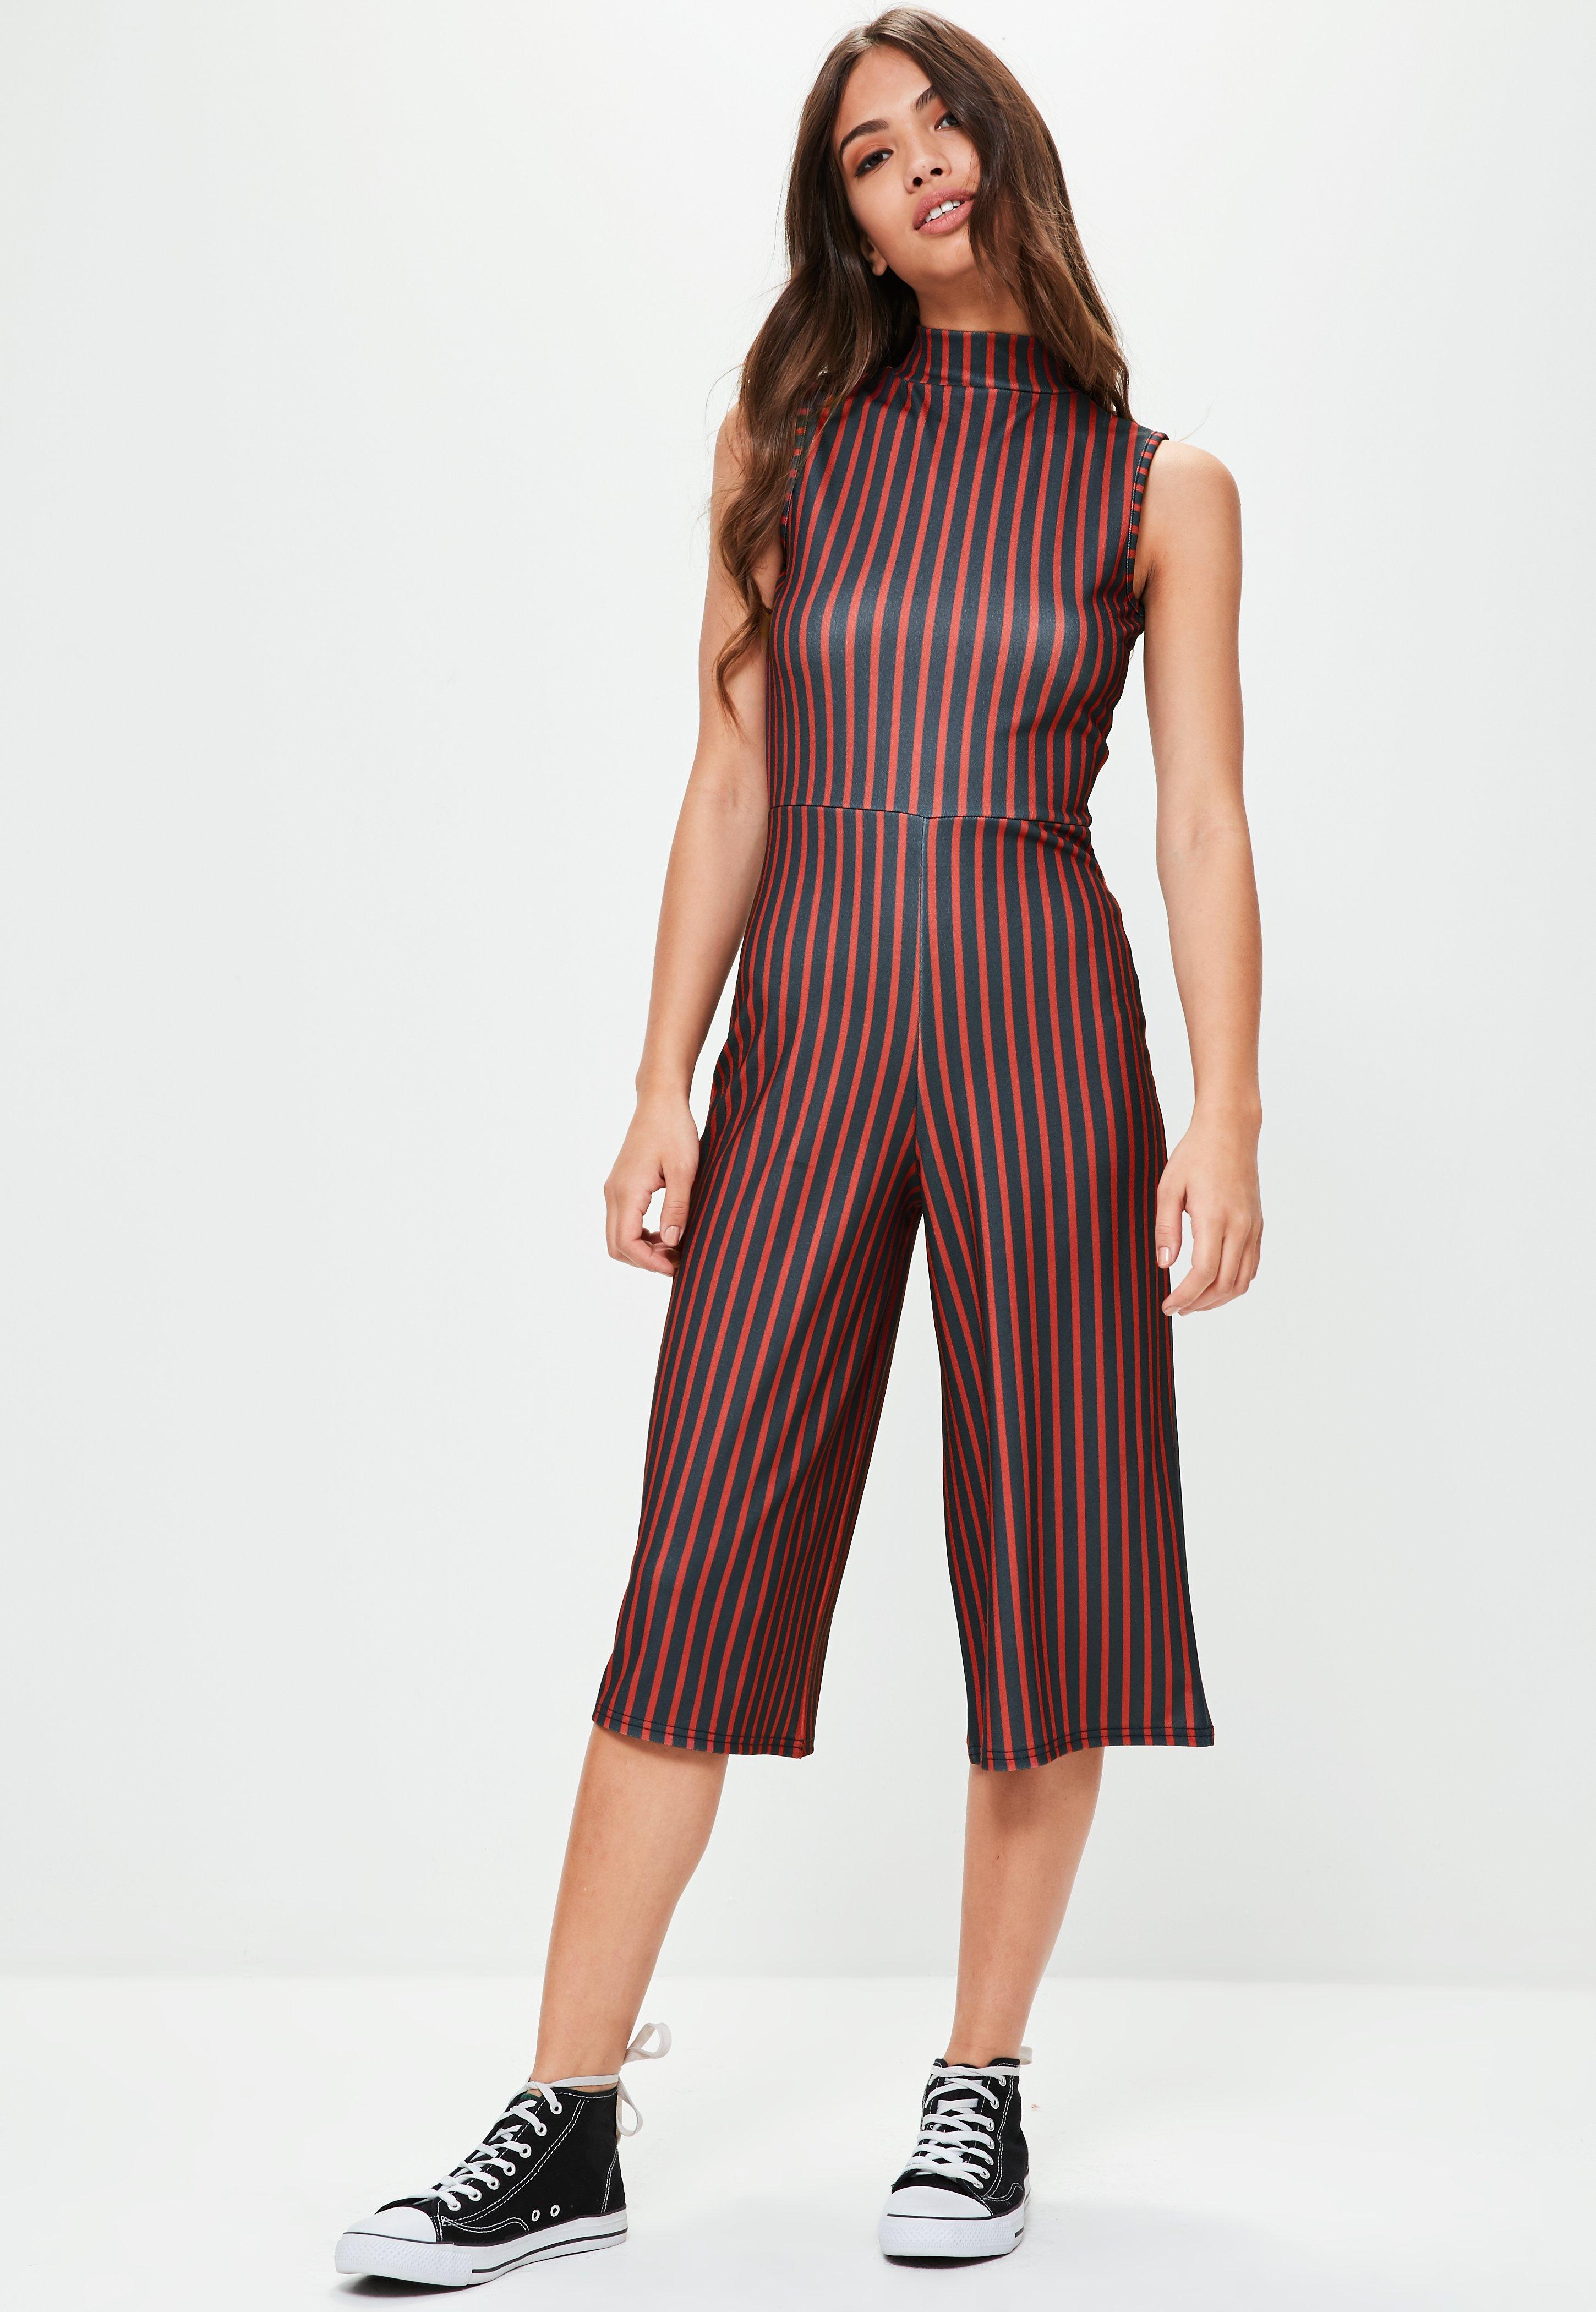 06940970e3 Black And White Striped Jumpsuit Missguided – DACC